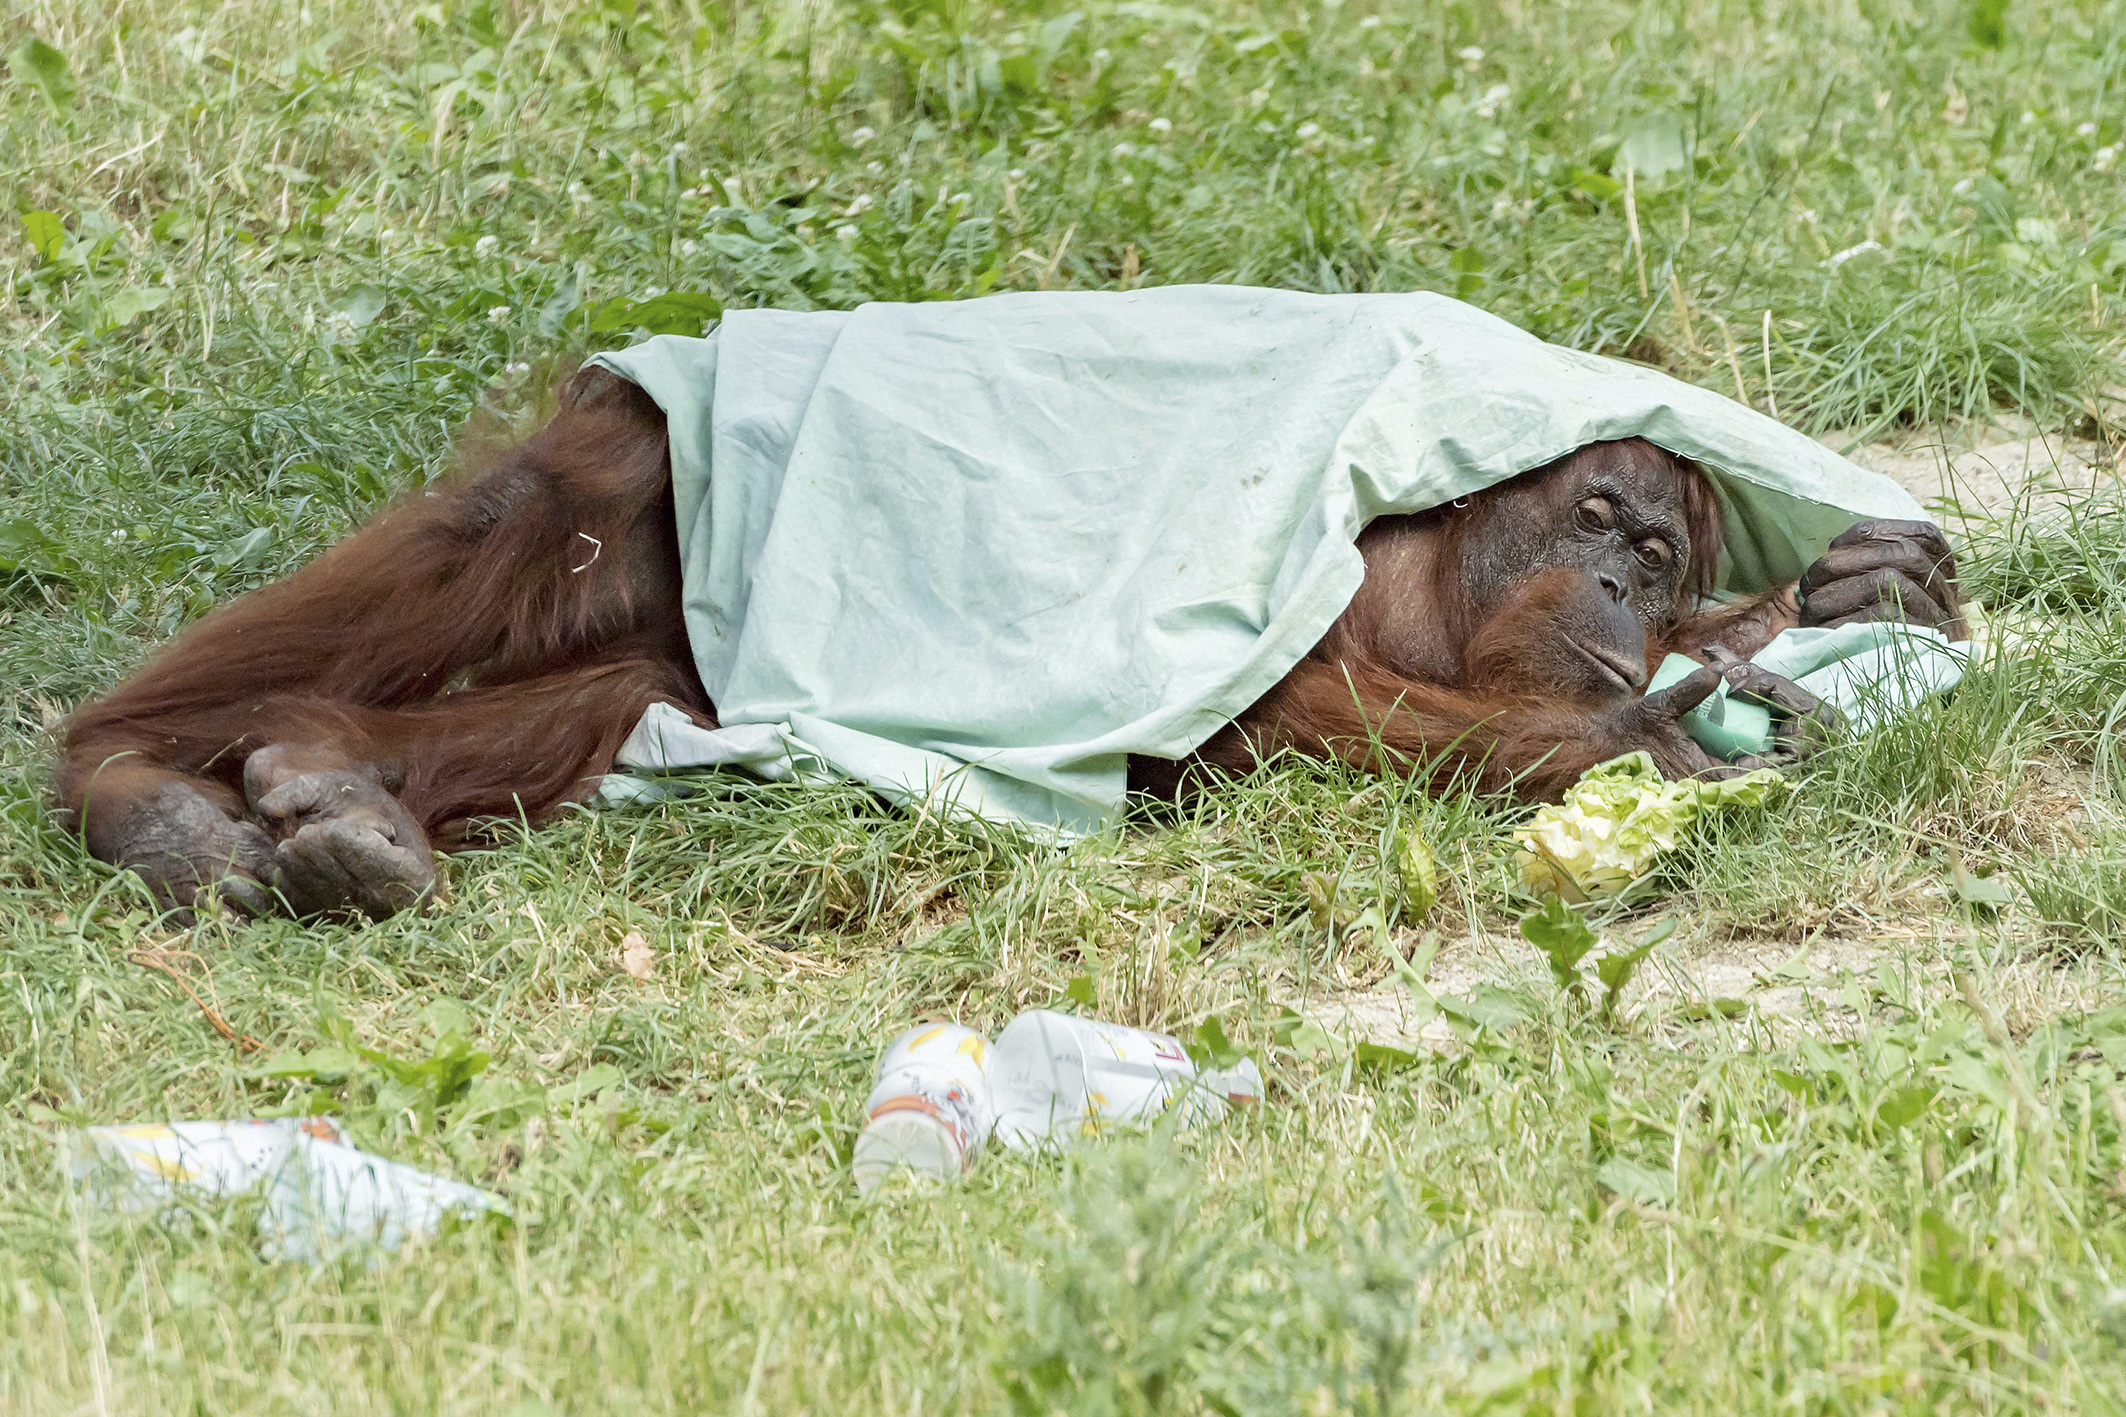 A handout picture of an orangutan taking shelter from the sun under a blanket at the zoo Schoenbrunn in Vienna, Austria